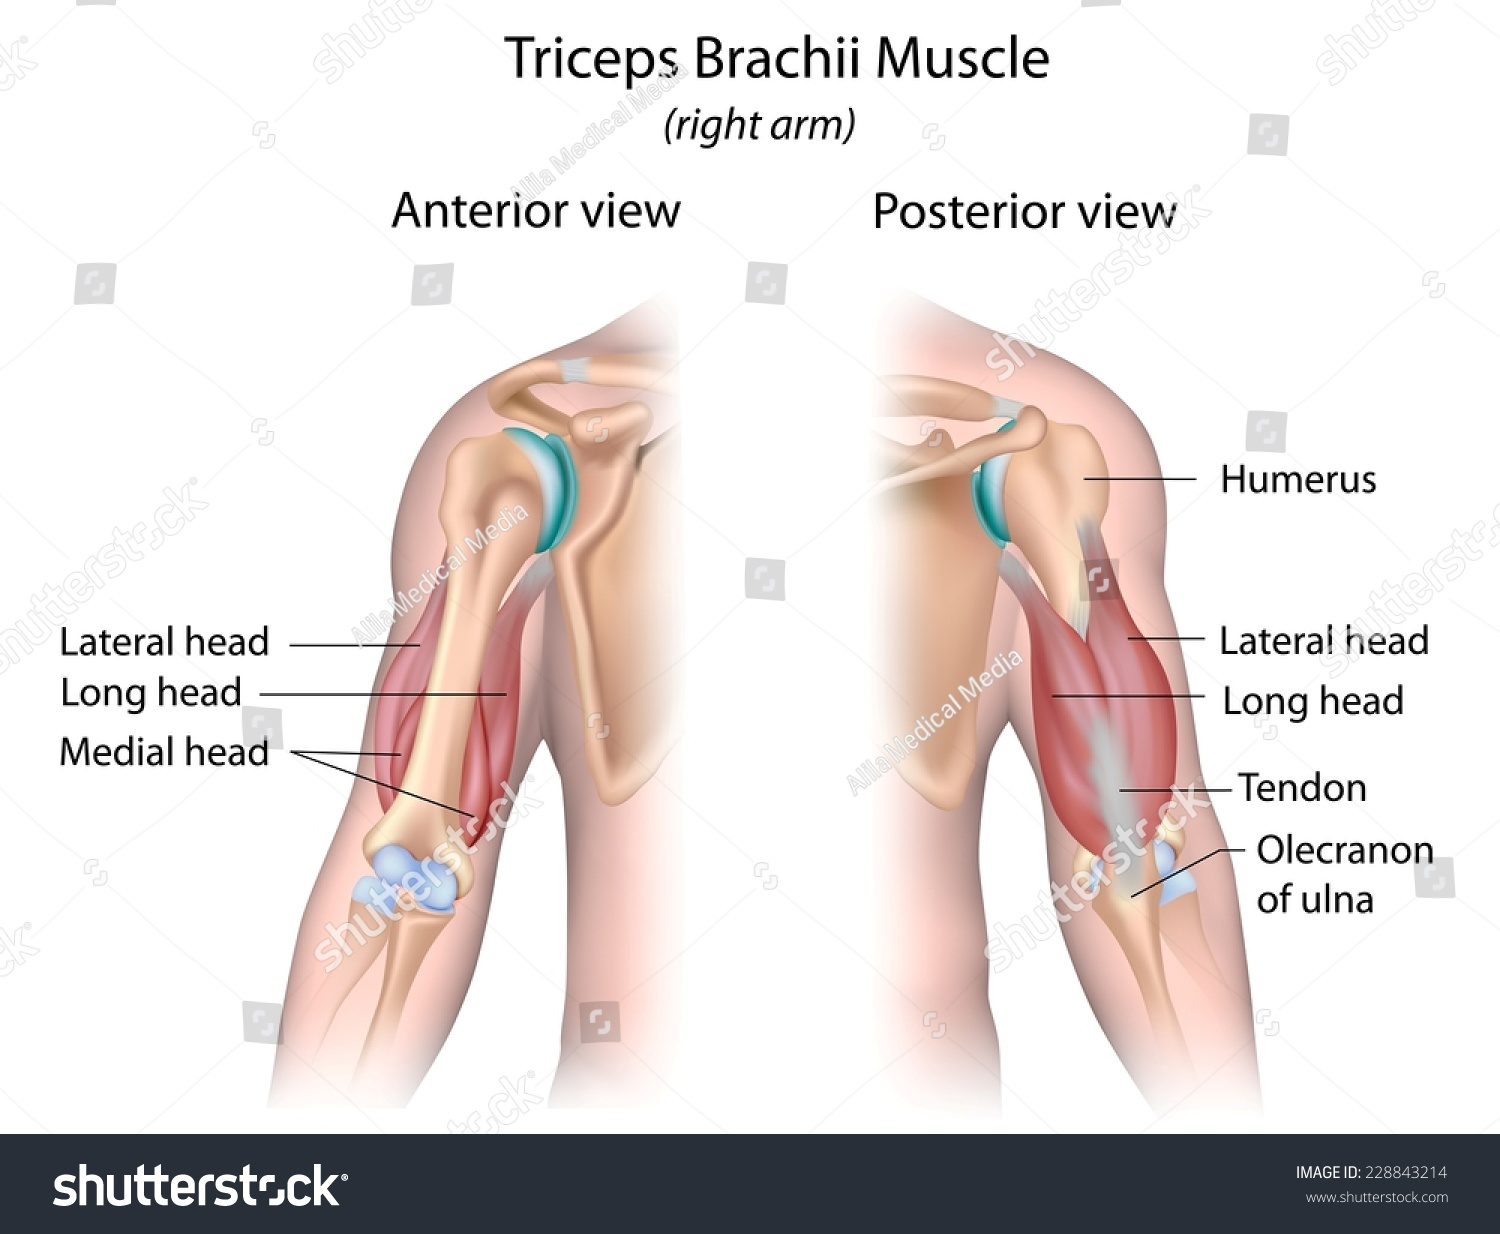 Royalty Free Stock Illustration Of Triceps Brachii Muscle Labeled